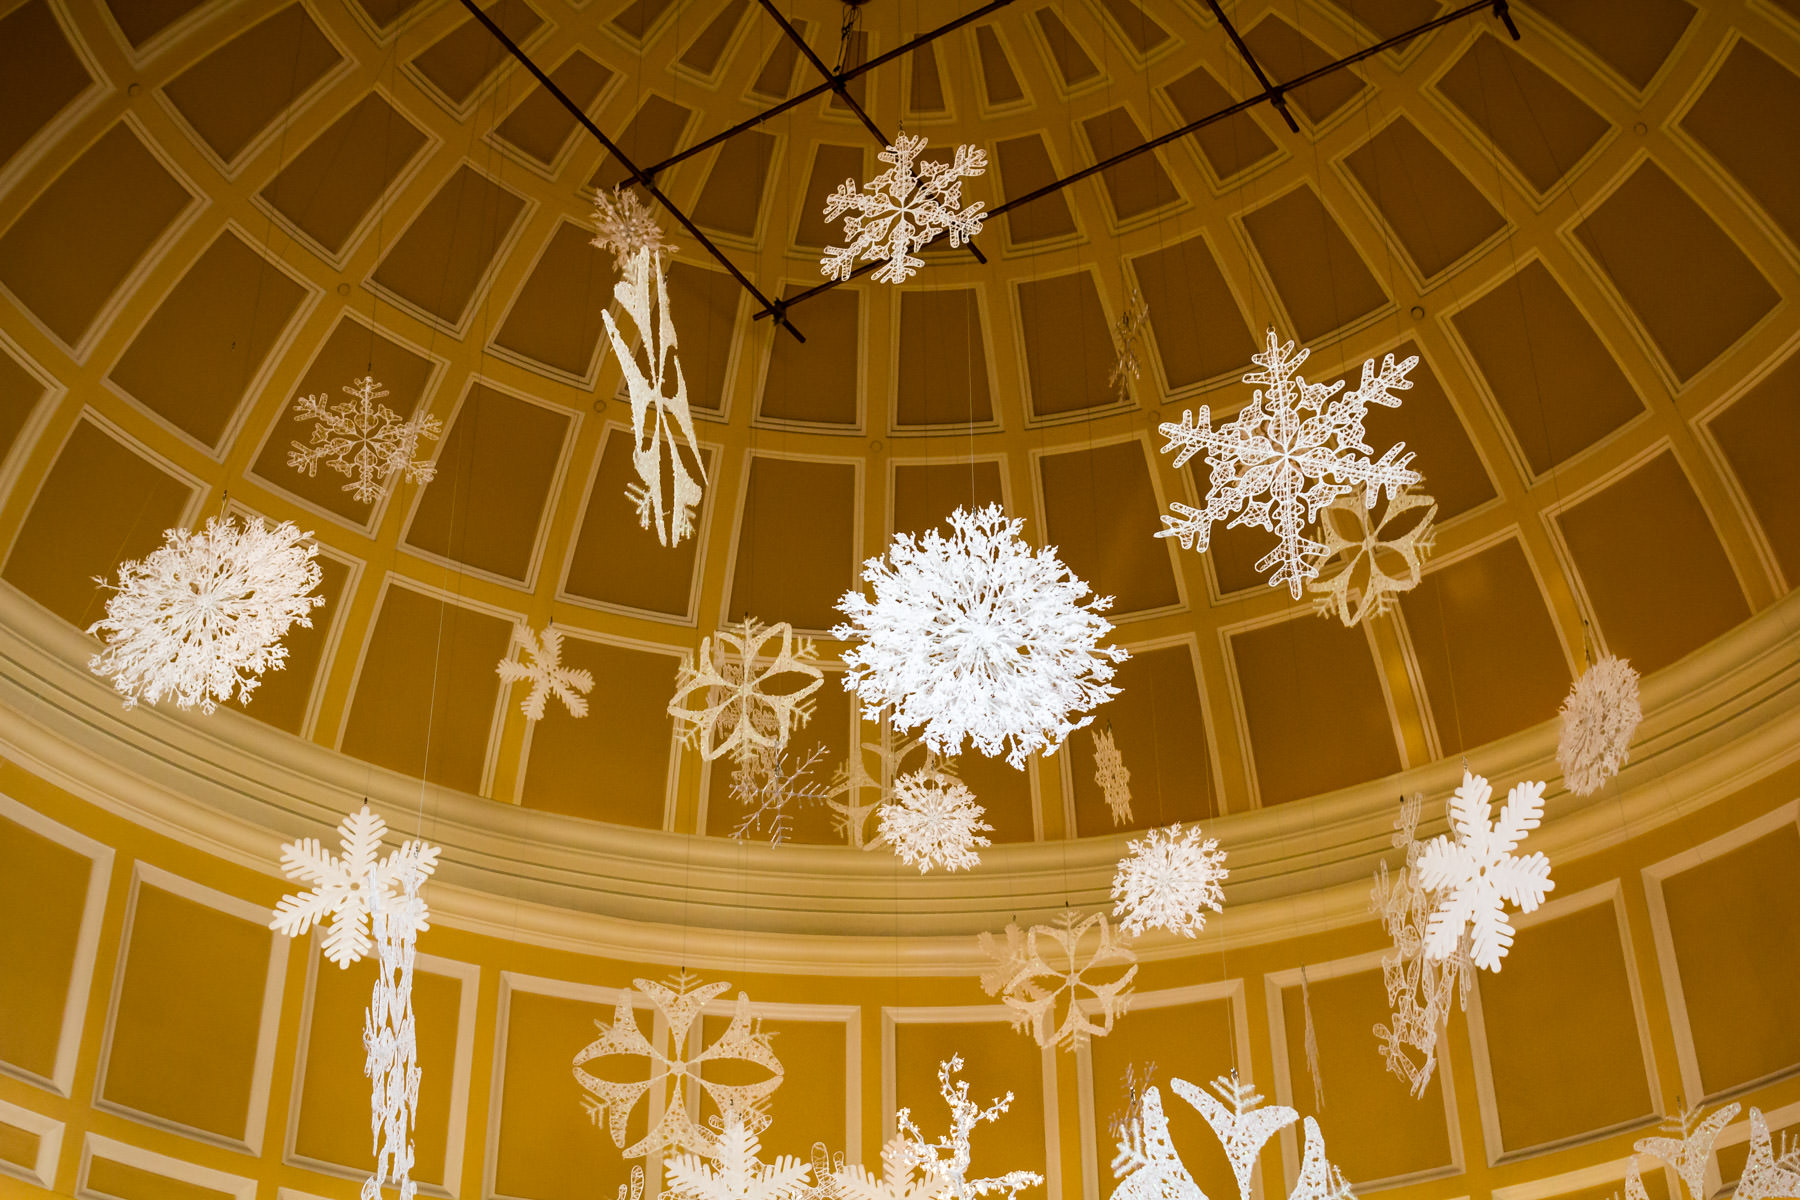 Decorative snowflakes herald the arrival of winter in the Conservatory at the Bellagio, Las Vegas.